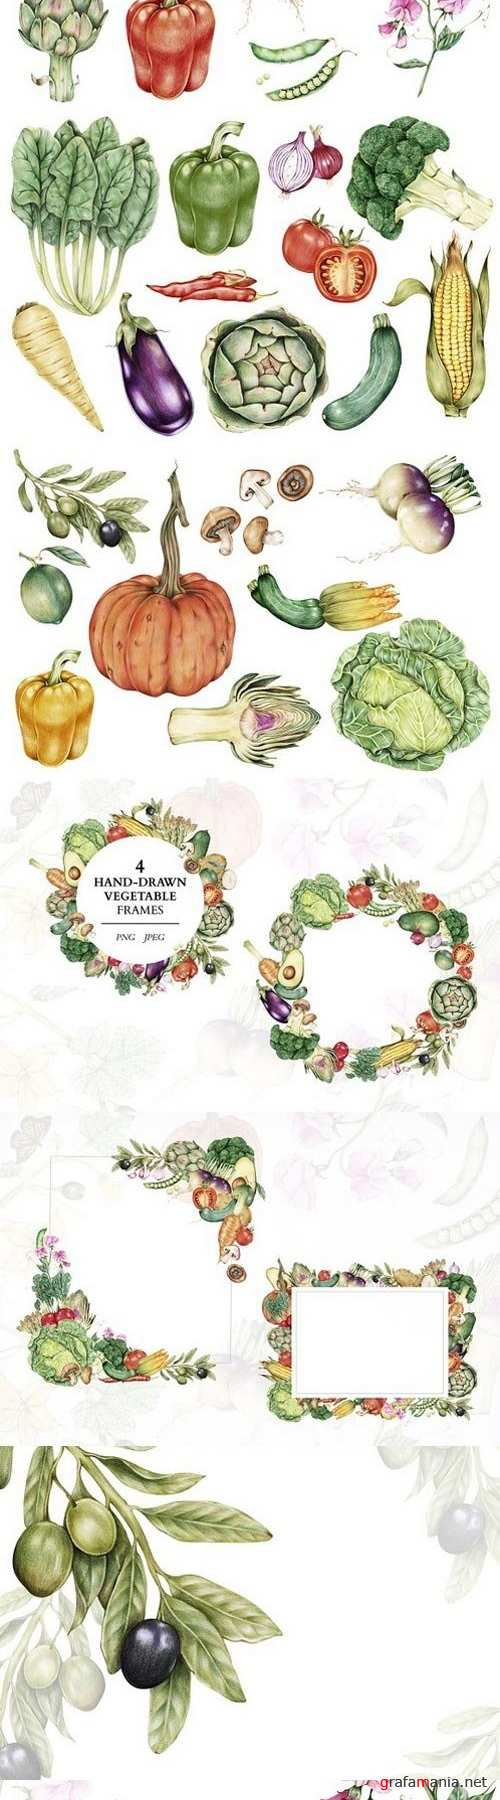 29 Incredible hand-drawn vegetables 1734414